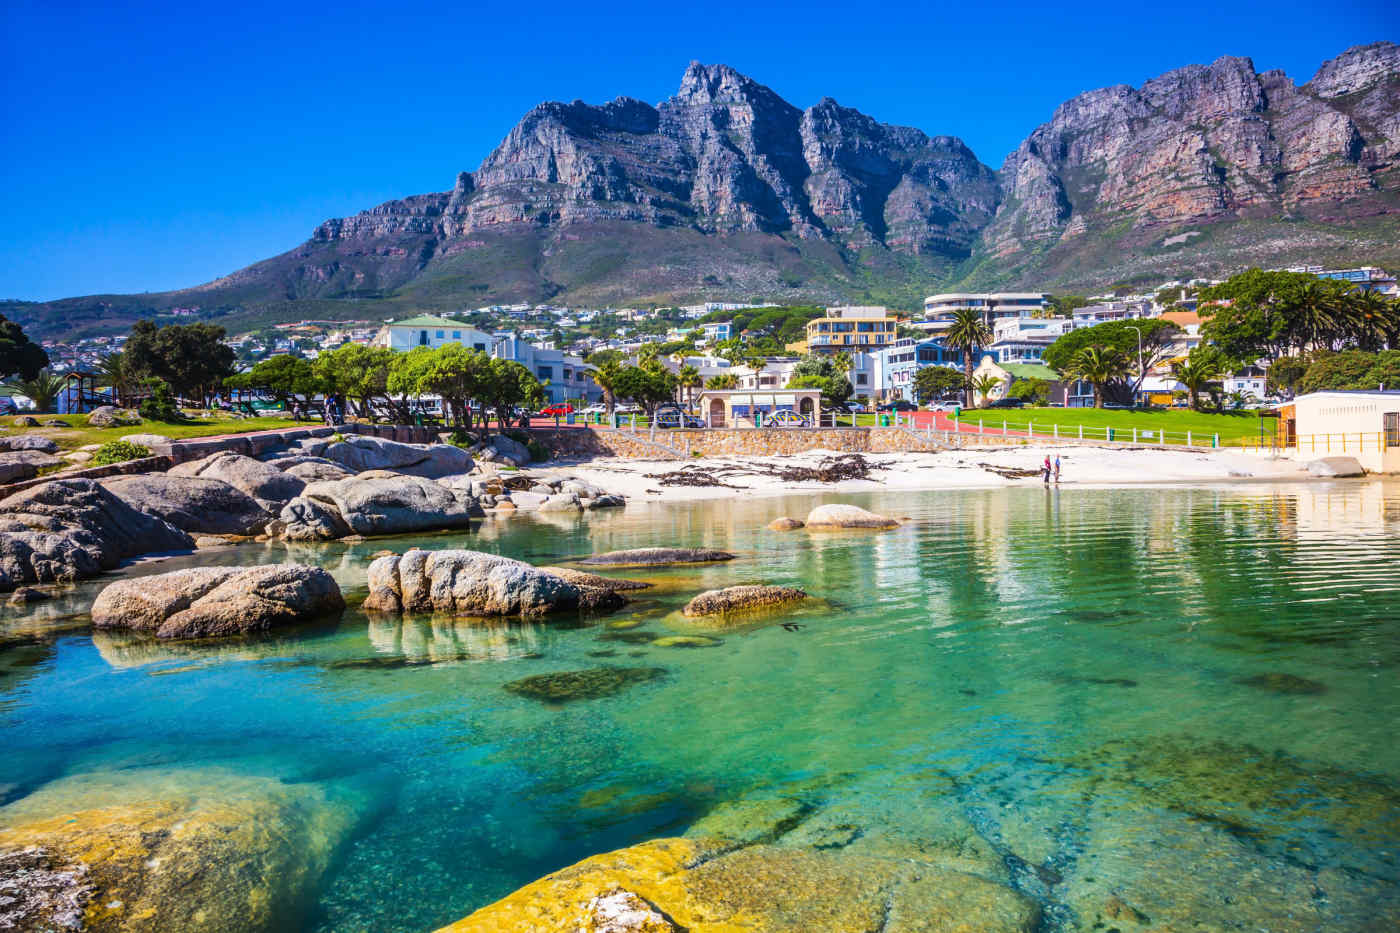 Camp's Bay in Cape Town